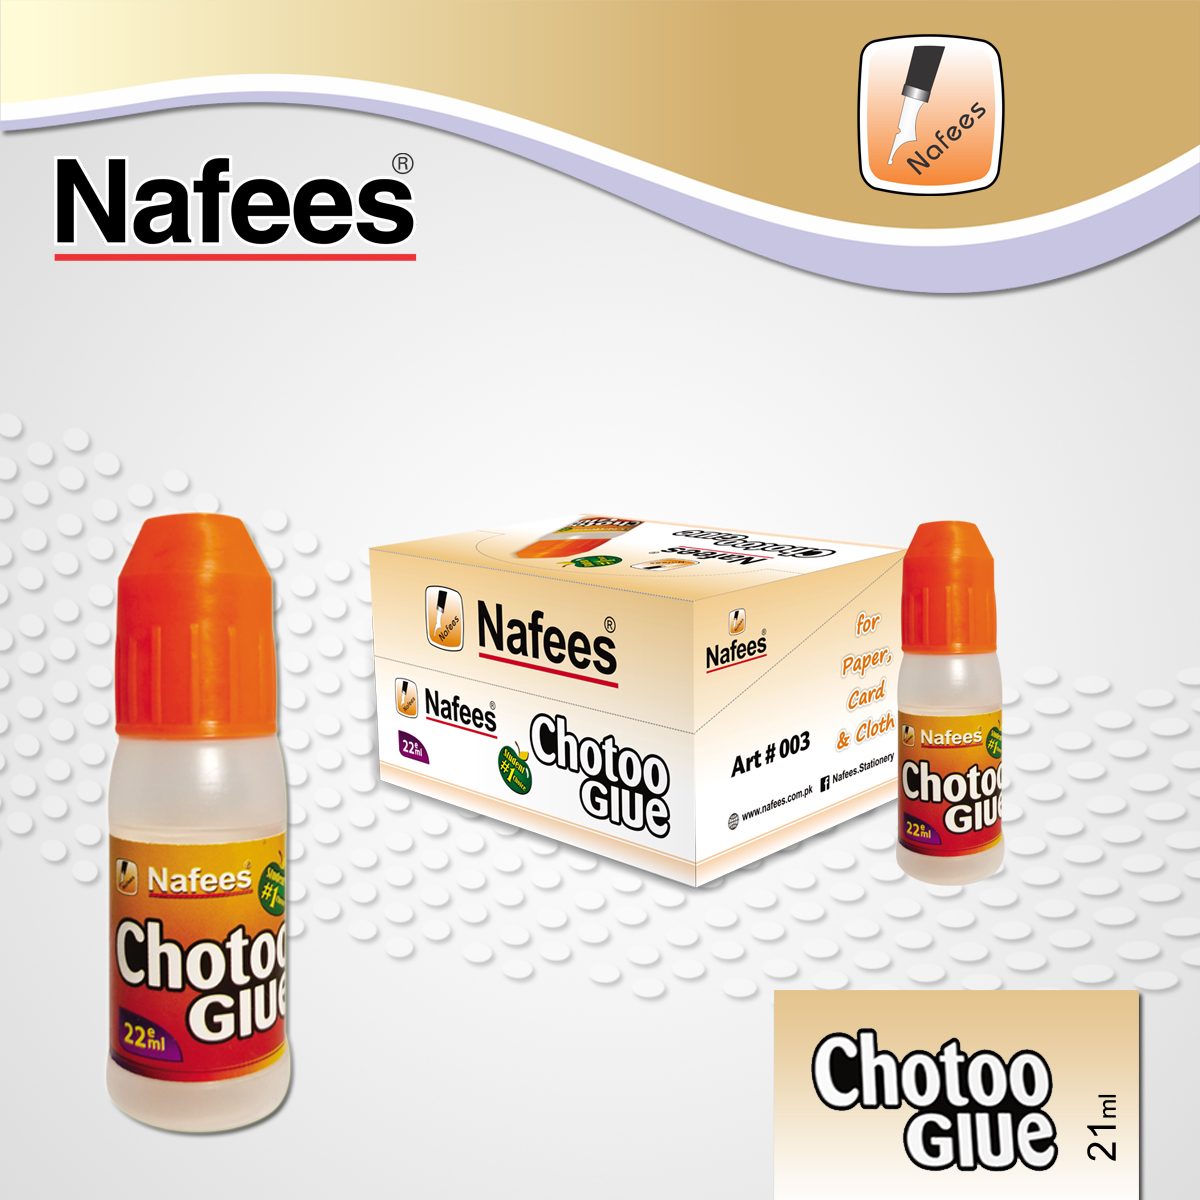 22ml Chotoo Glue